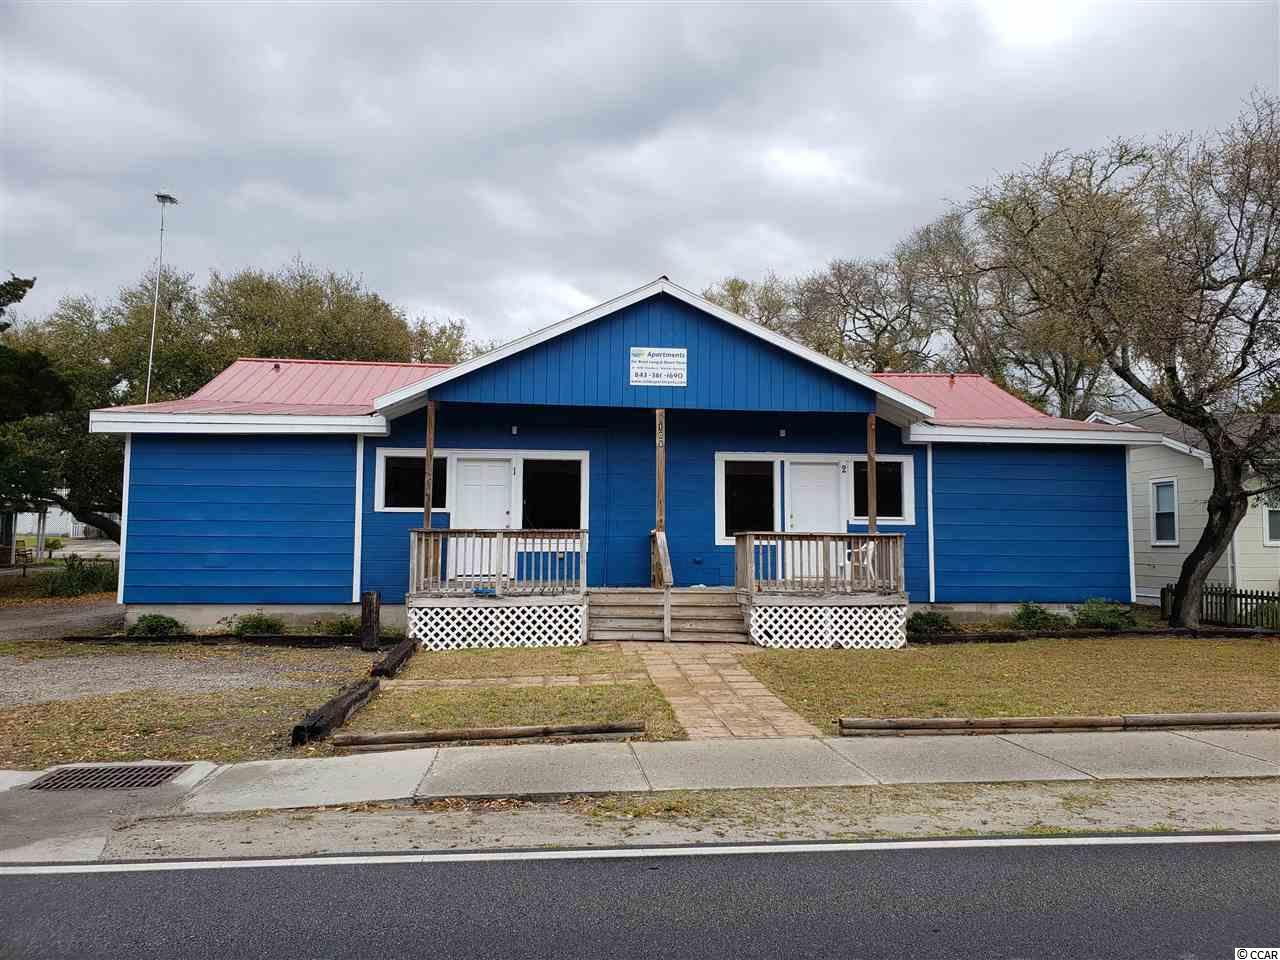 5 units structure built on a double commercial lot a block from the ocean and a short walk from Main St. in NMB.  The property was completely rebuilt in 2014.  New HVAC units, new metal roof, all is up to code. Four 1 BR / 1 bath units and one 2 BR / 2 bath units. Short term and long term rentals are allowed.  ENTRY TO THE INTERIOR IS NOT AUTHORIZED!   ***seller financing is available with an accepted offer.***